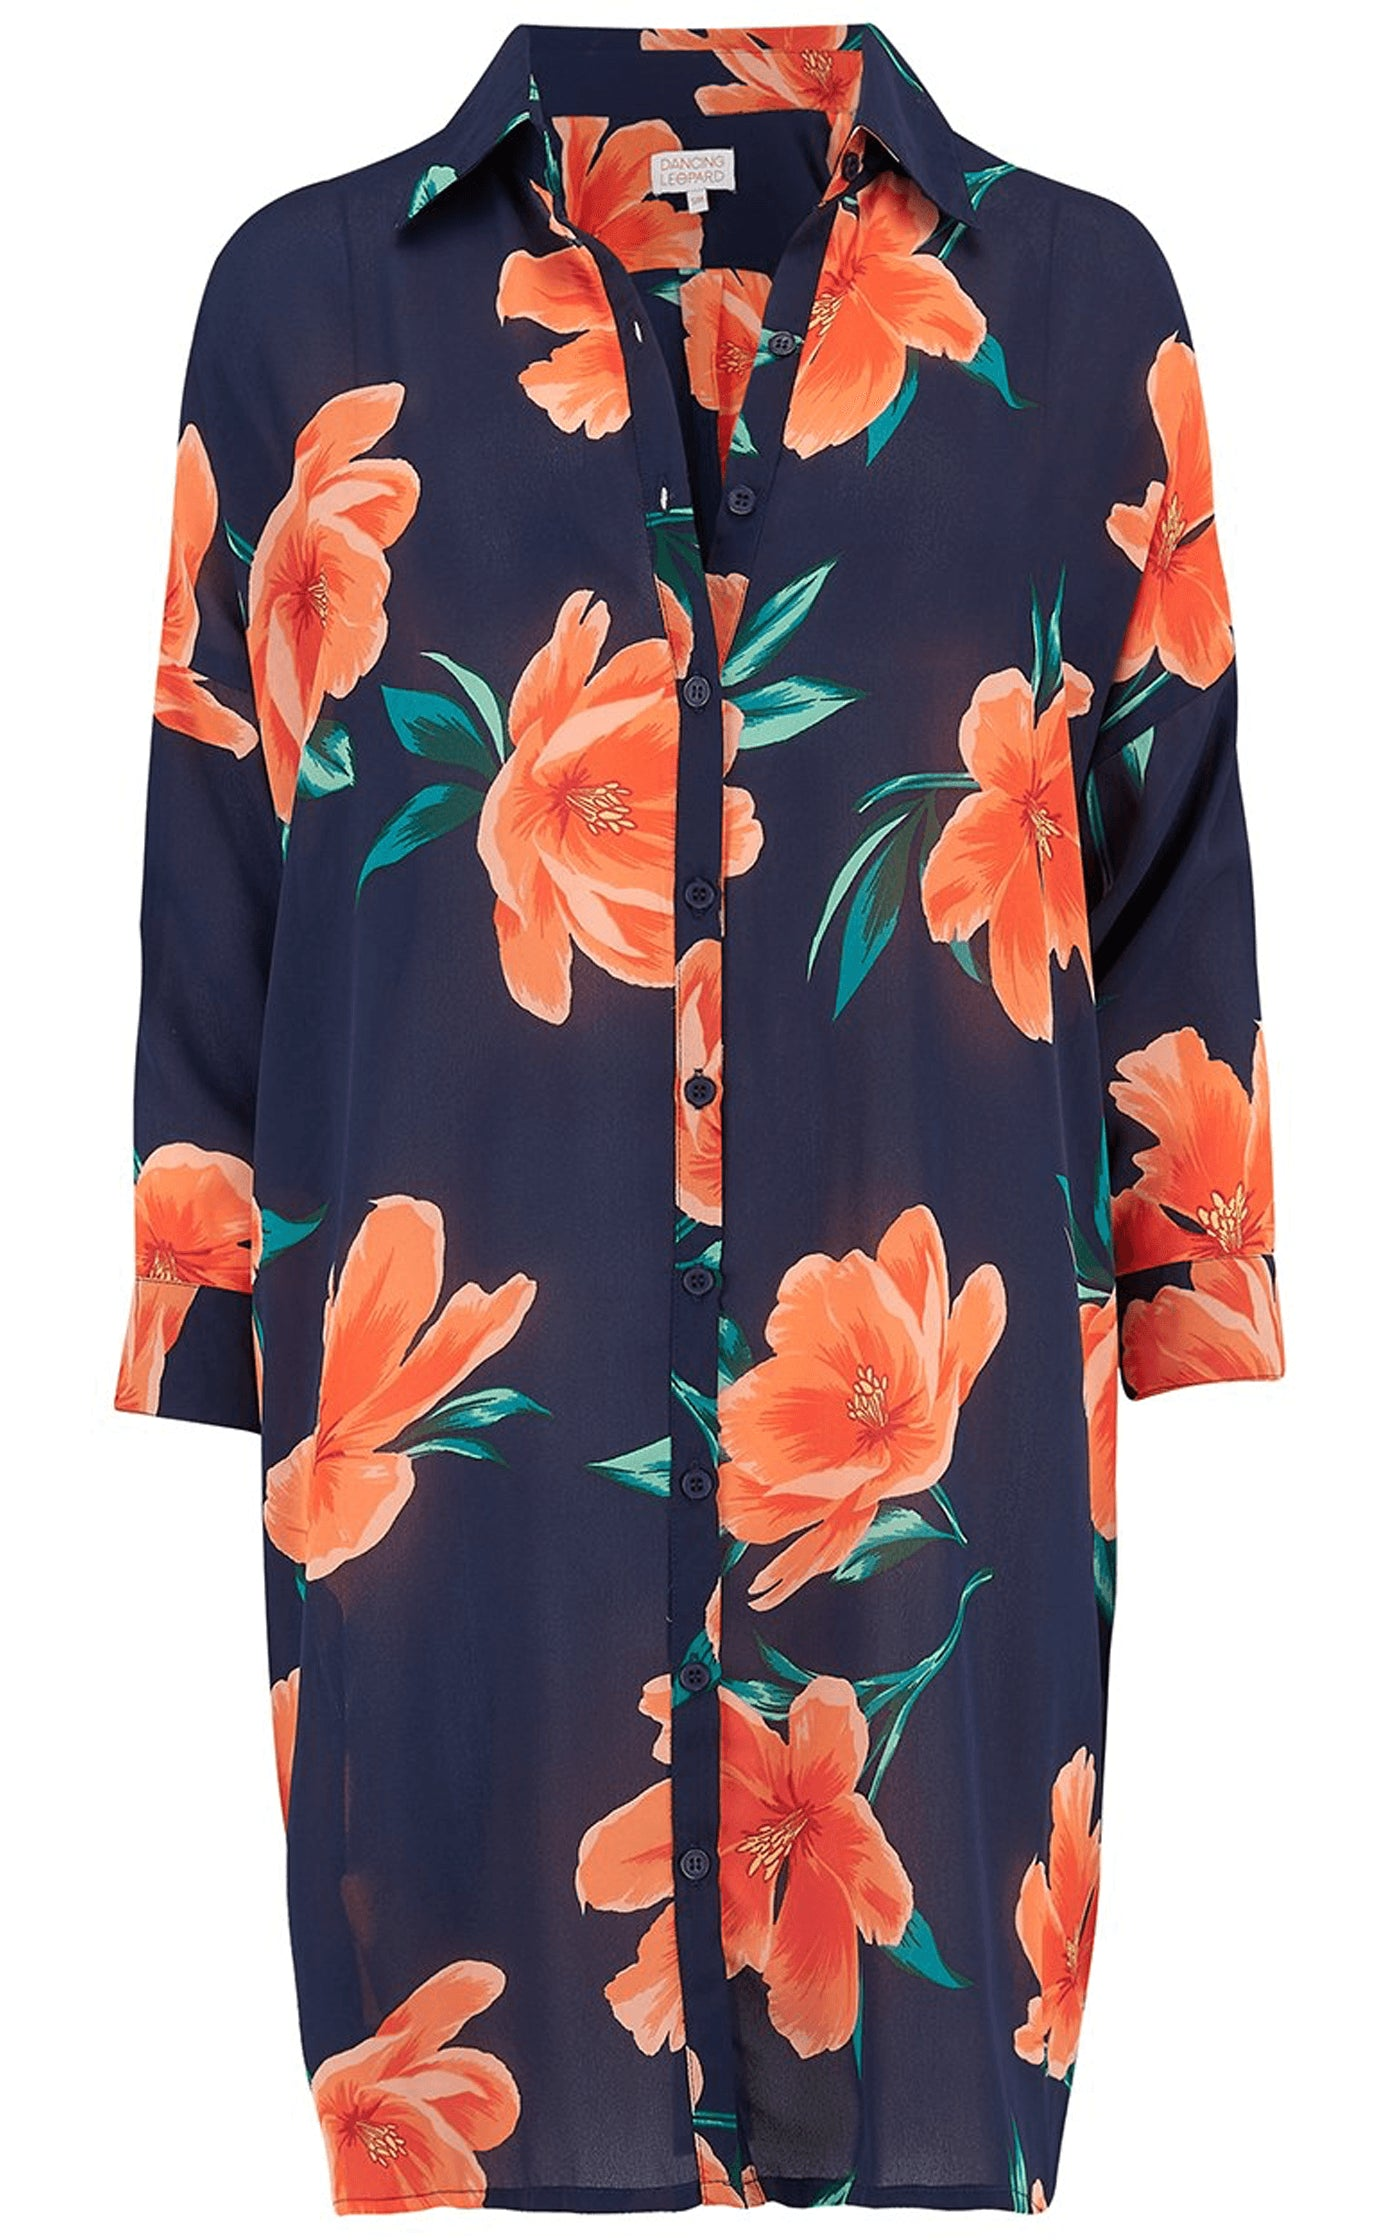 Front view of Jericho Shirt Dress in orange and navy floral tulip print on white background